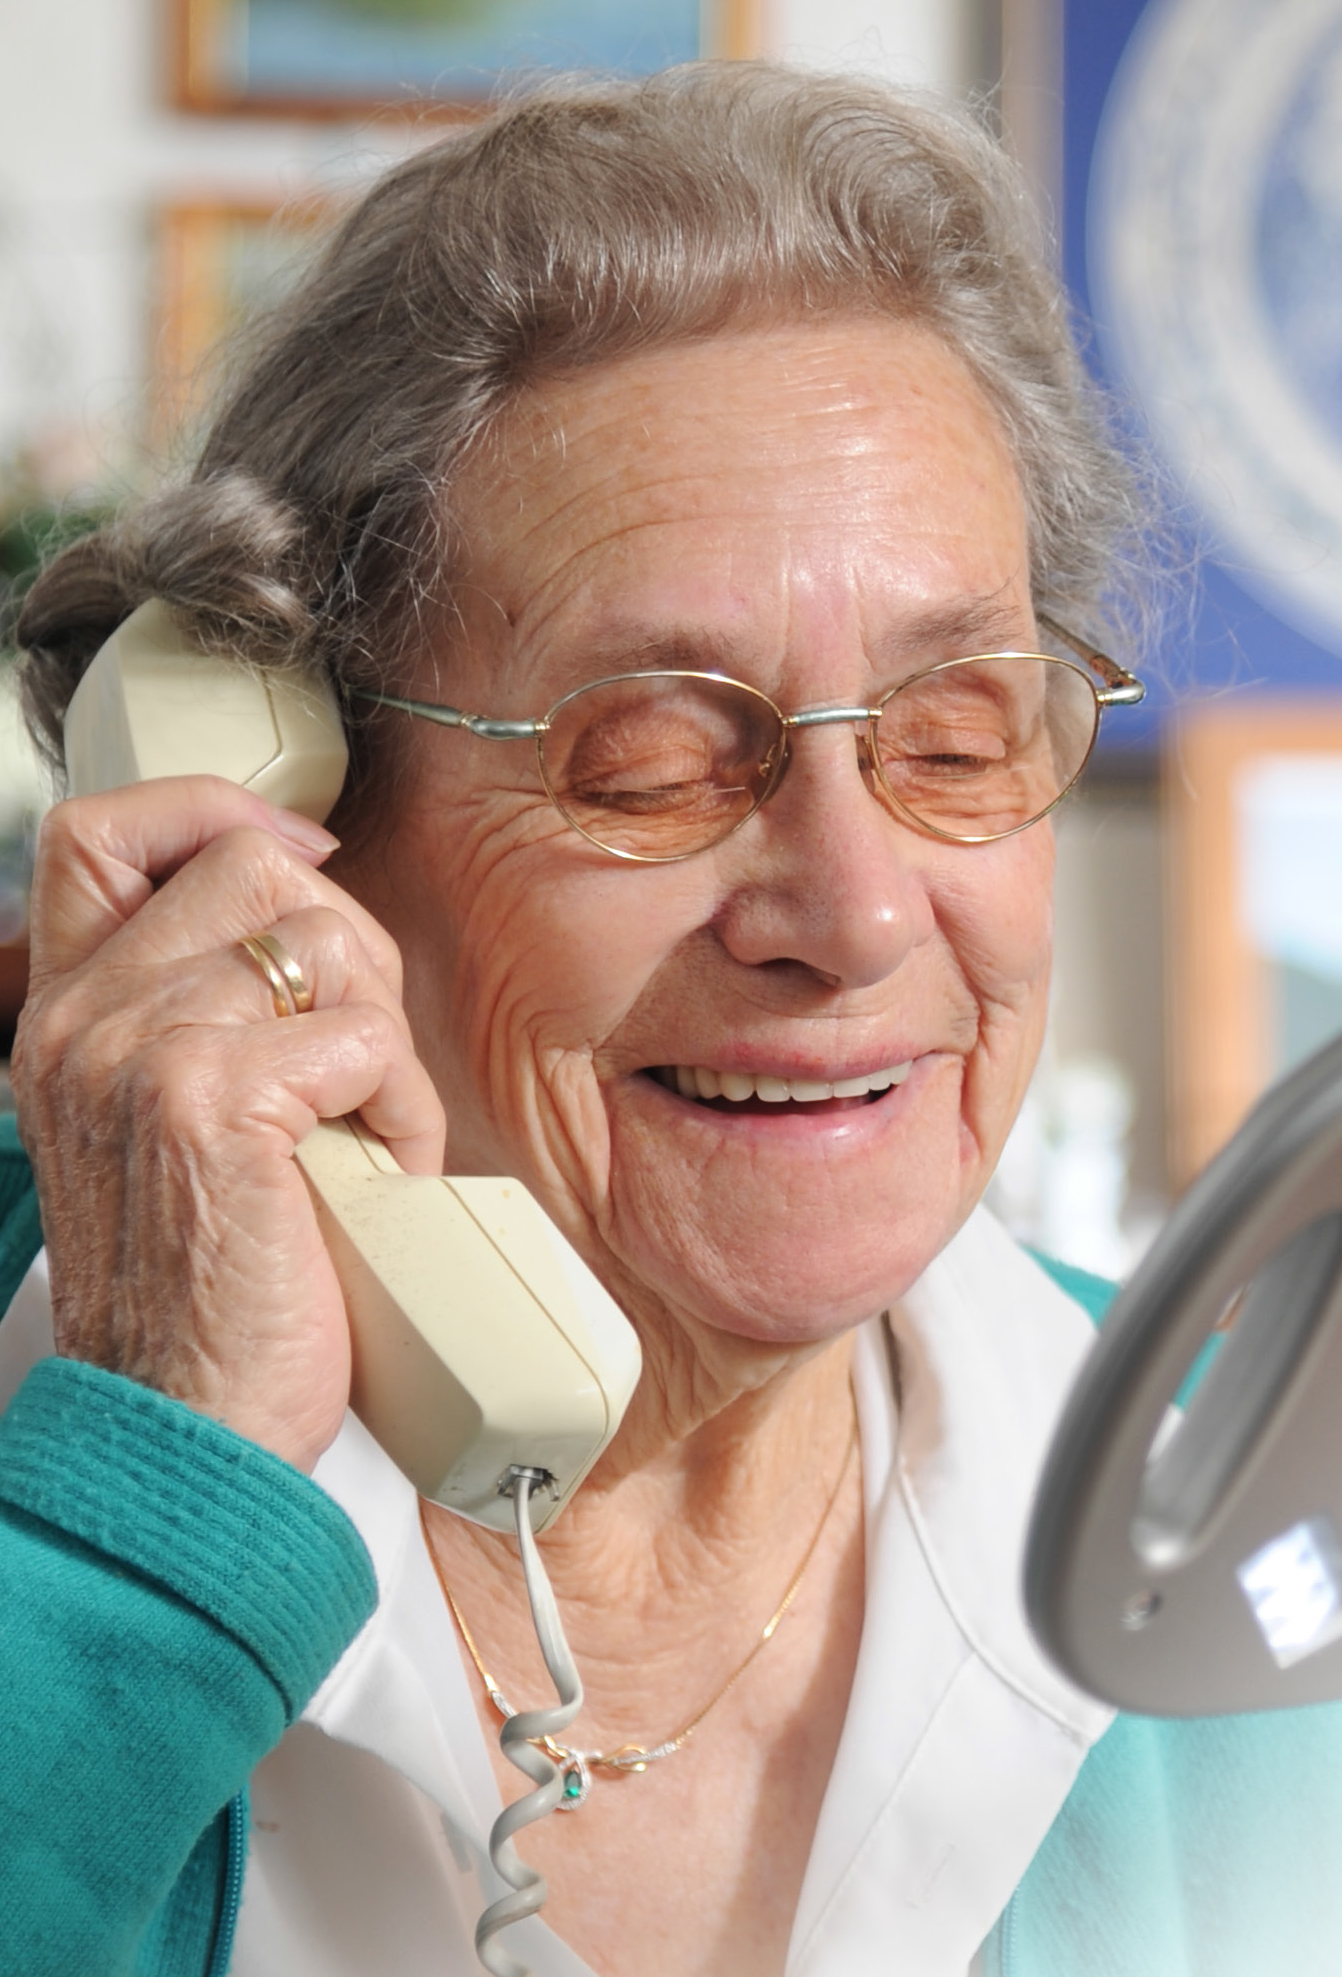 A photo of a woman on a telephone